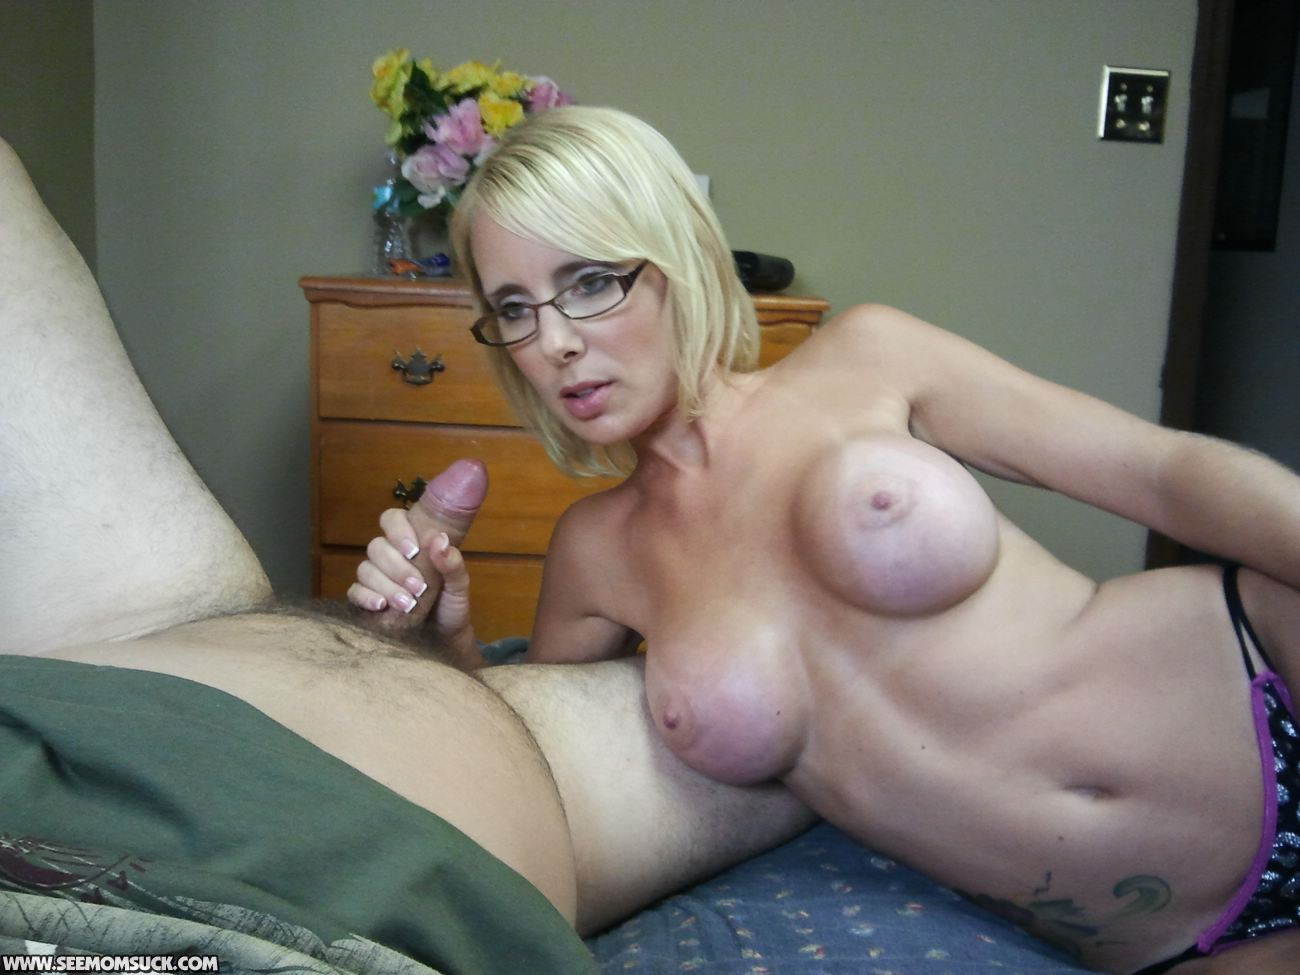 Agree, huge tit mom sucks my cock amusing